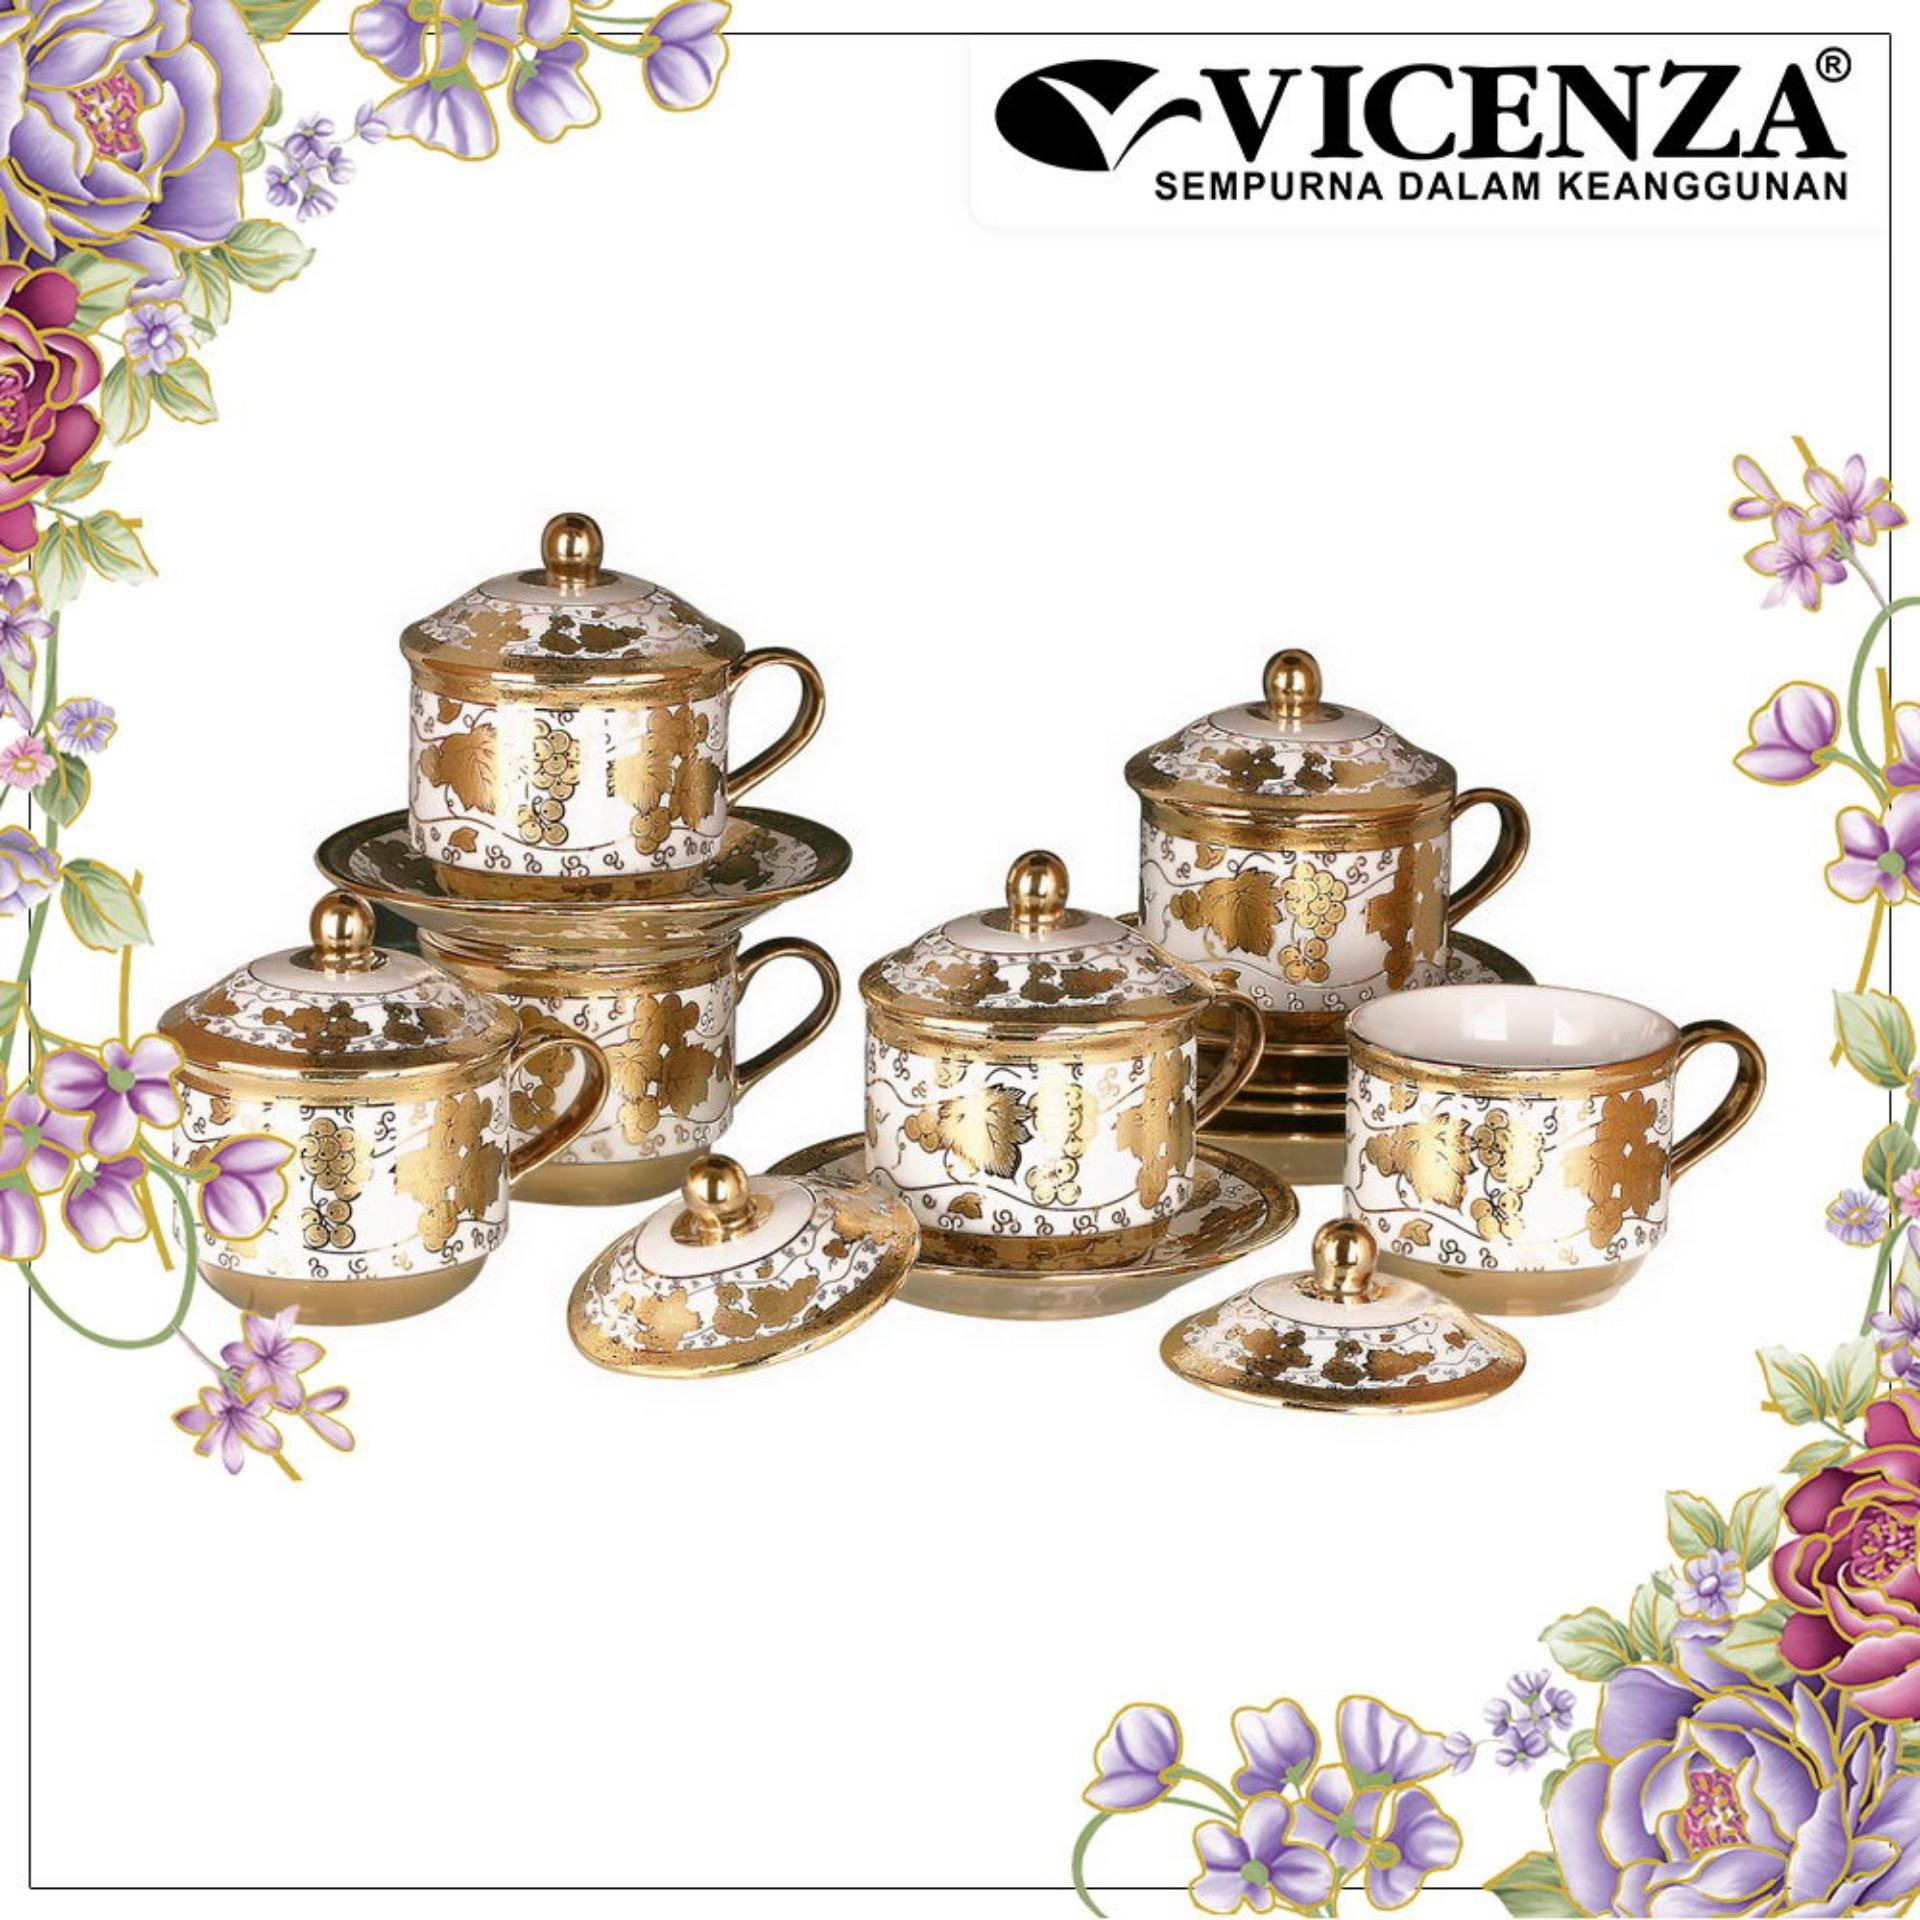 Vicenza TABLEWARE CRY85 (Cangkir dan Lepek dengan Tutup / Cup and Saucer, Tea Set with Cover)